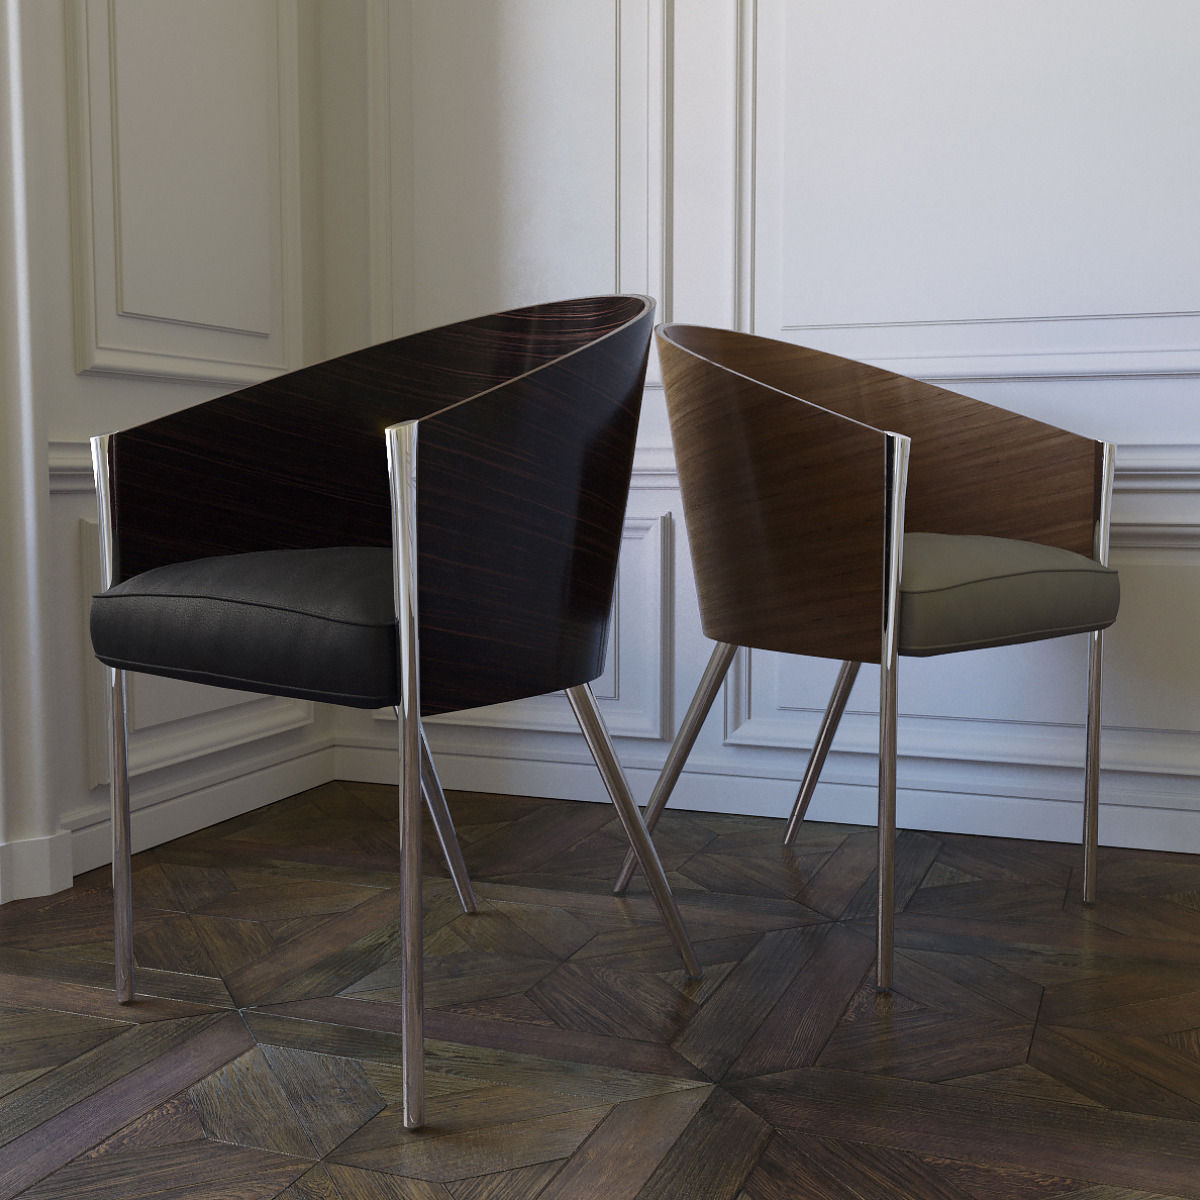 Costes Armchair - There are objects universally recognized as icons. Costes easy chair that, in 1984, marked the beginning of the partnership between Philippe Starck and Driade such as the consecration of the designer, formerly unknown in Italy, is one of these objects. Designed for the homonymous, now disappeared, Parisian café, owes its timeless success to the absoluteness of forms: a dark wooden embracing structure with three highly tilted legs. | Matter of Stuff